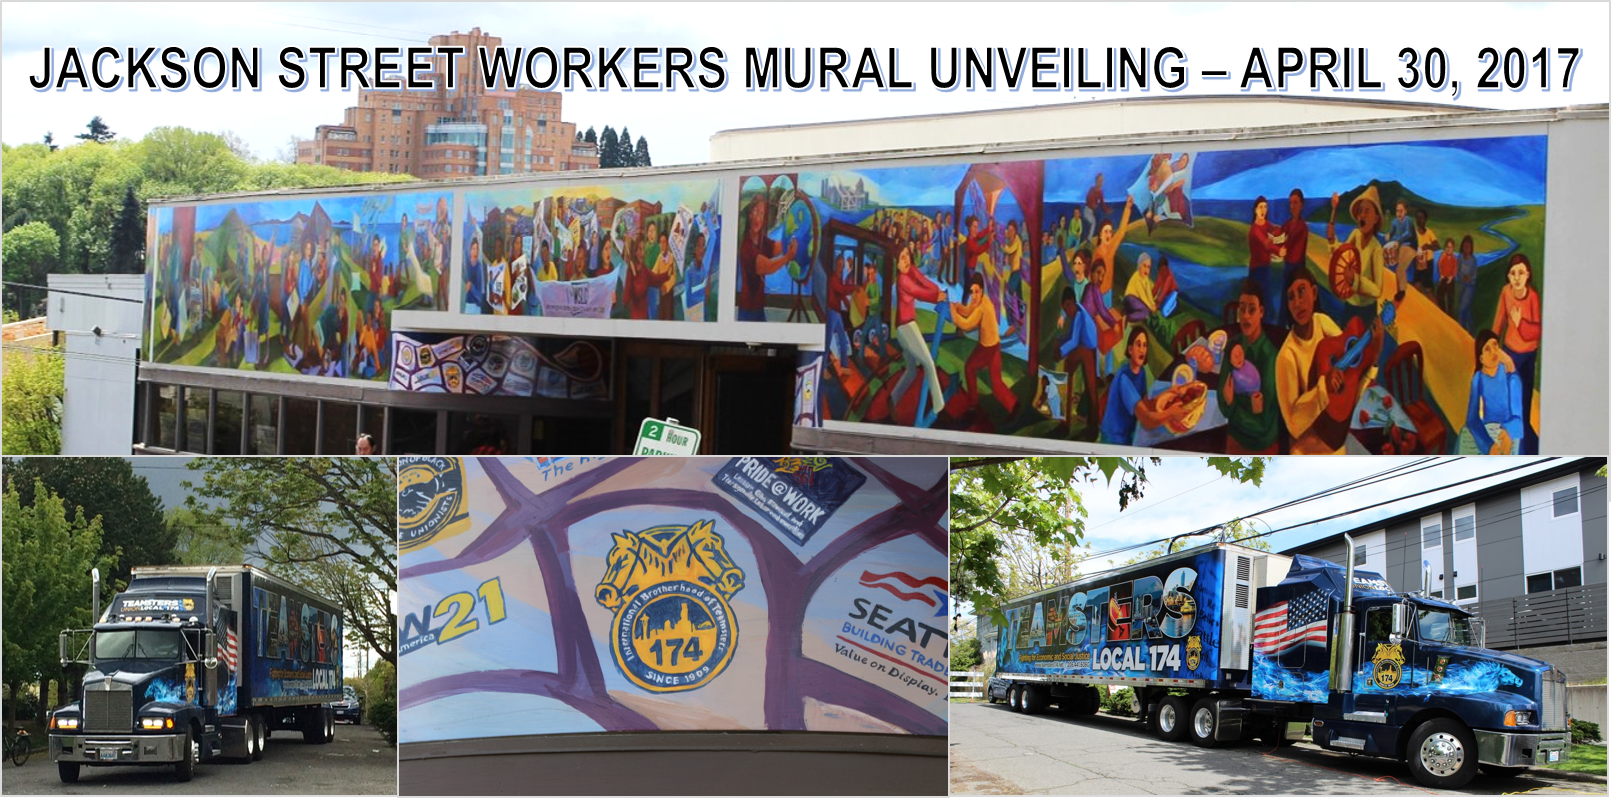 2017-5-1-Workers-mural-unveiling-1